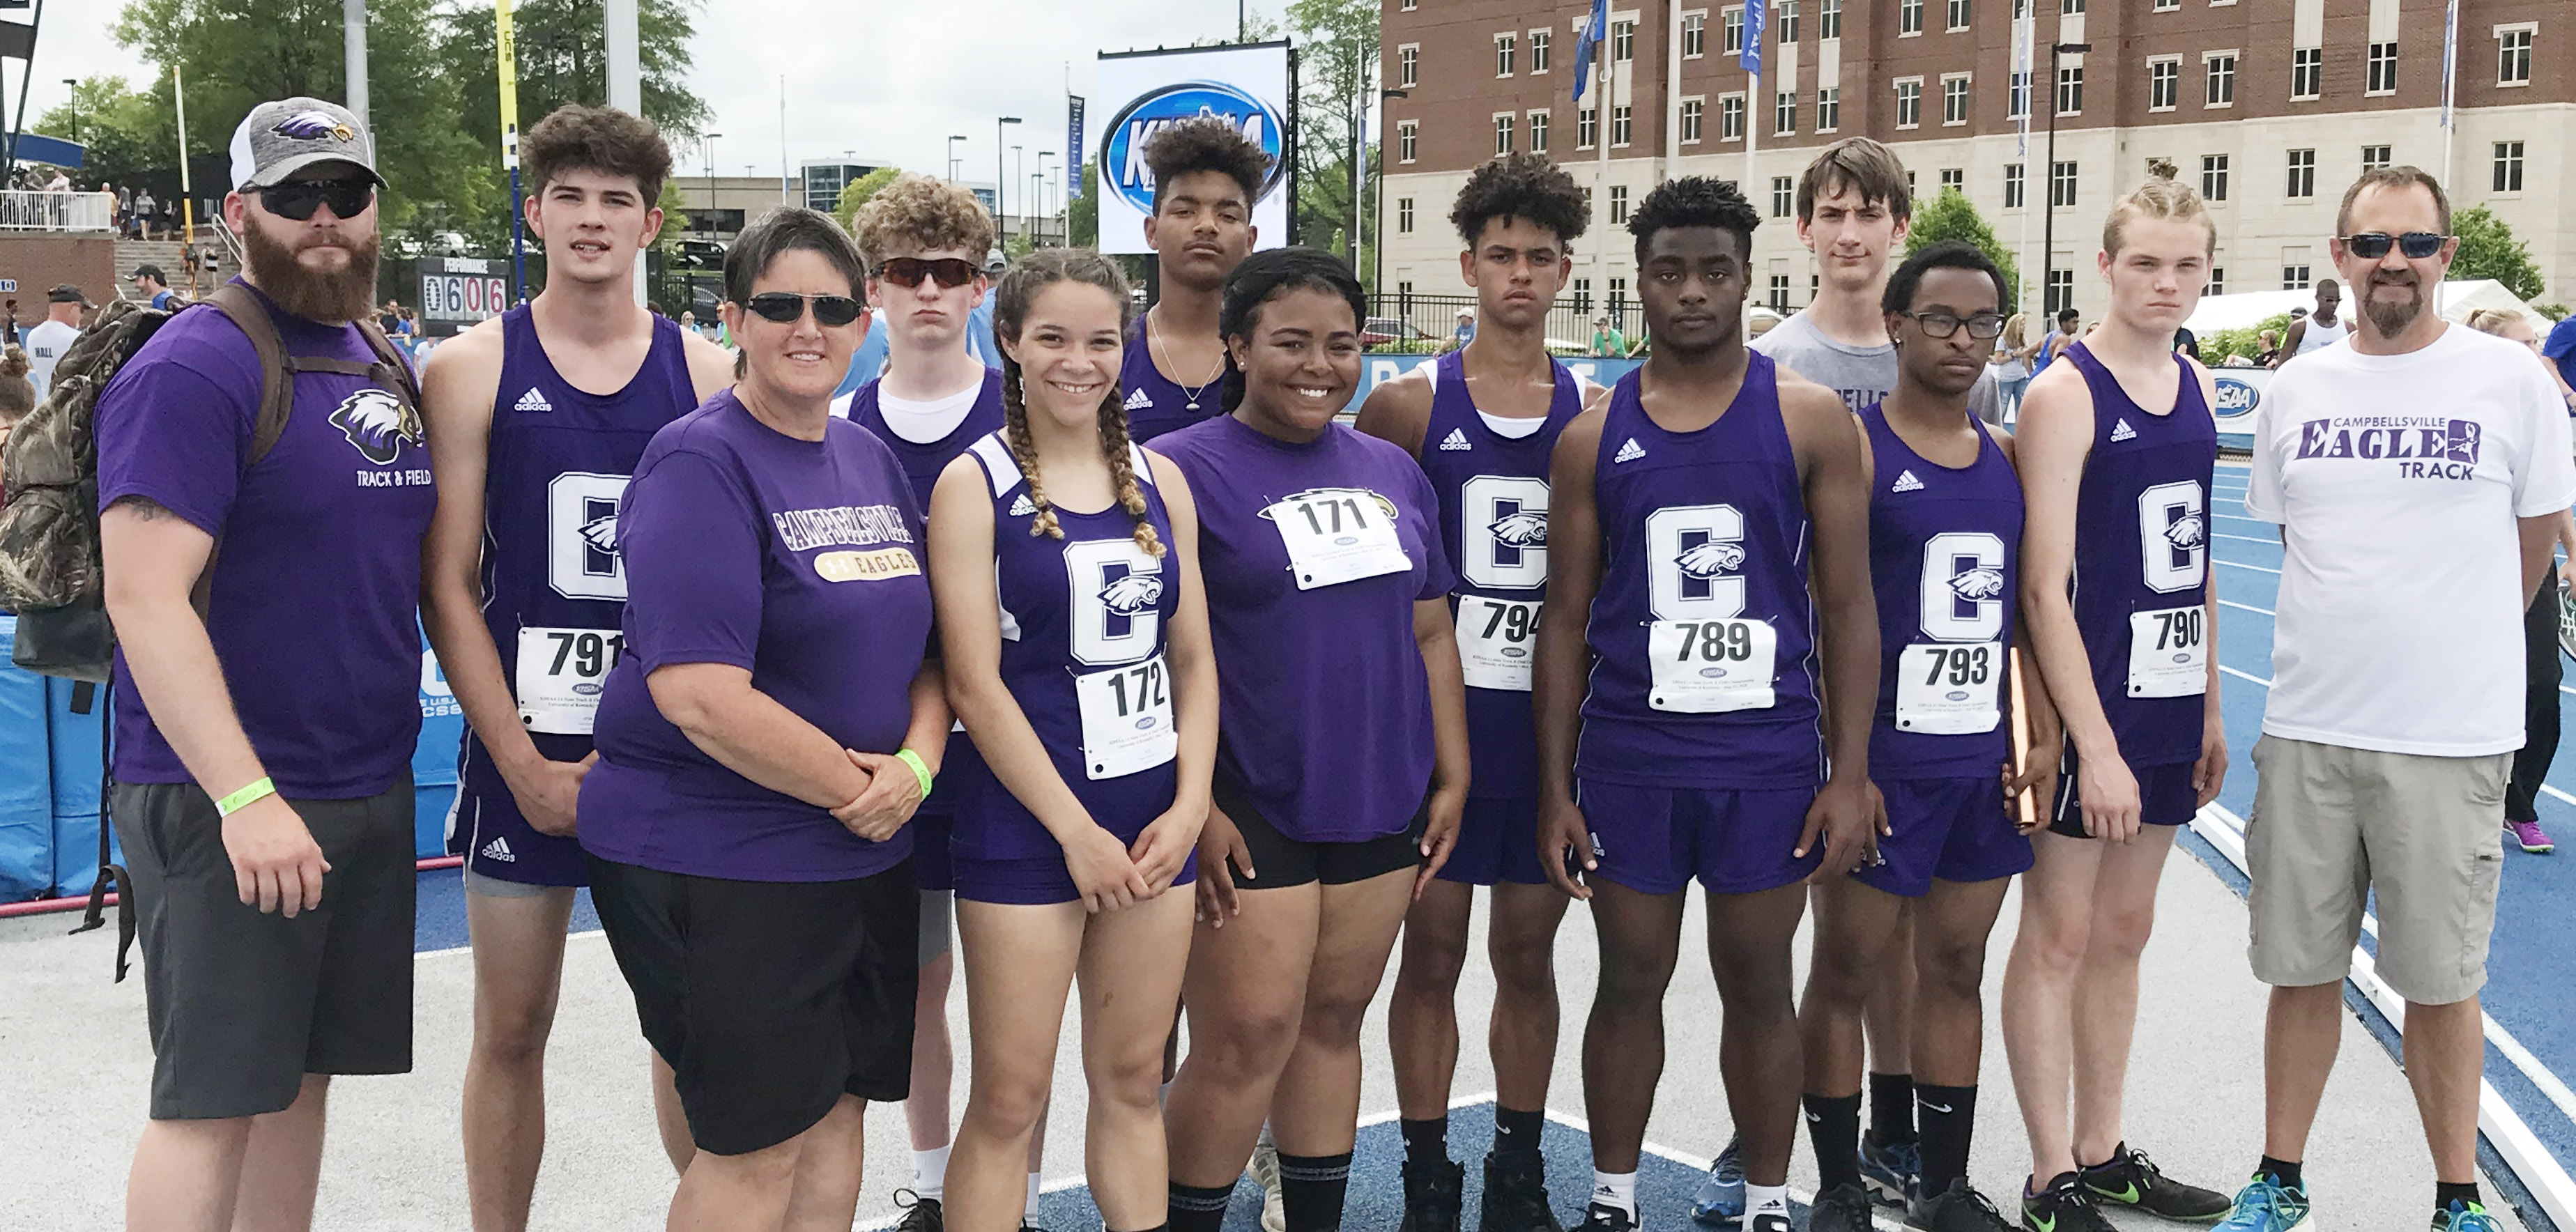 Campbellsville High School track team members competed at the Kentucky High School Athletic Association meet on Thursday, May 17. From left, front, are coach Katie Wilkerson, sophomore Taliyah Hazelwood, juniors Natalie Caldwell, Charlie Pettigrew, Daesean Vancleave and Joe Pipes and coach Steve Doss. Back, assistant Tyler Abney, sophomore Mark Rigsby, junior Jackson Hinton, freshman Reggie Thomas, sophomore Mikael Vaught and junior Evan McAninch.